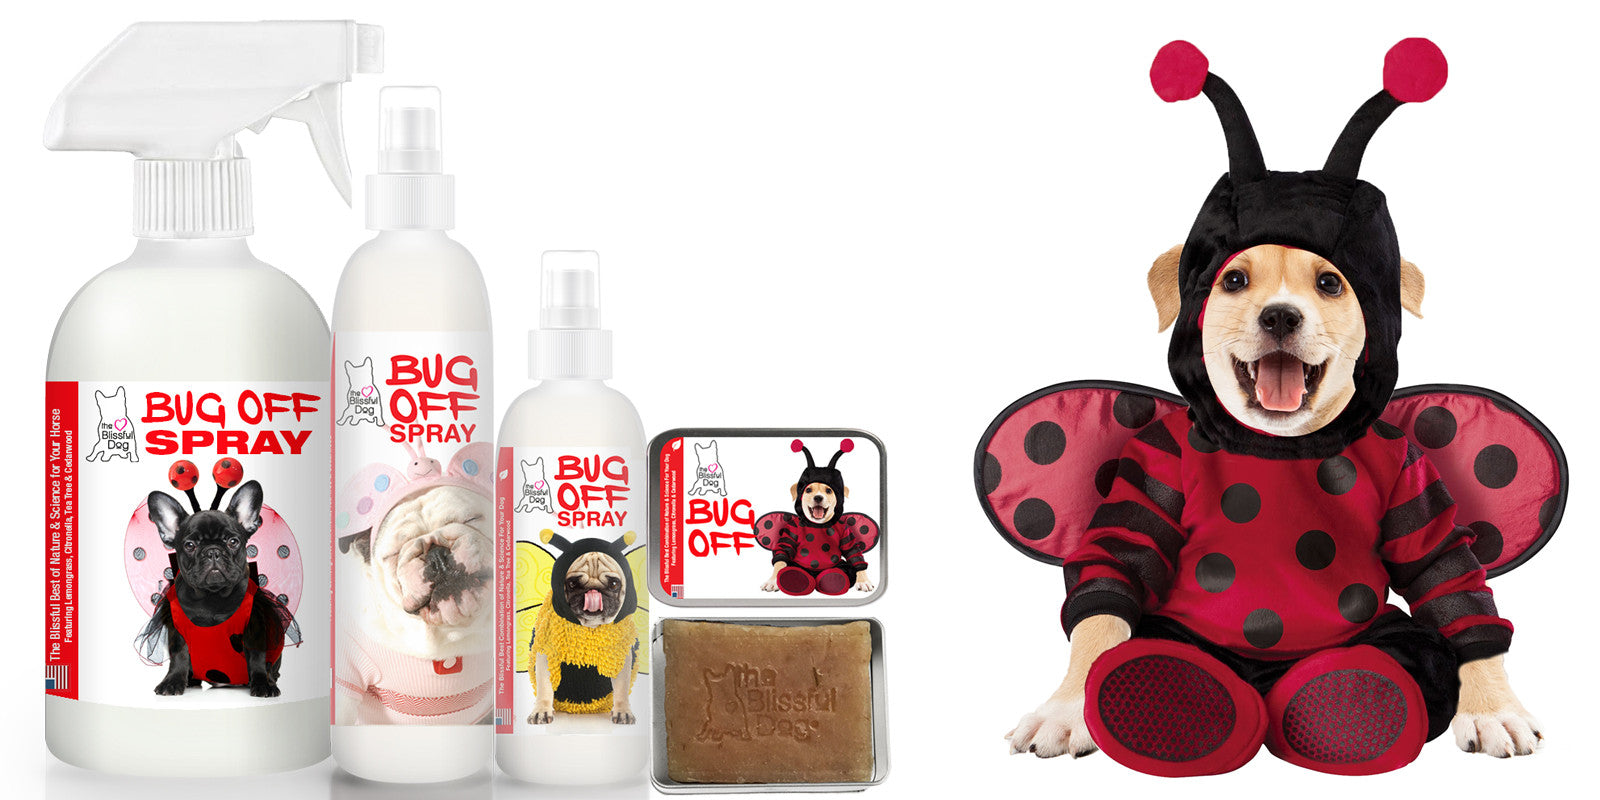 BUG OFF SPRAY FOR DOGS